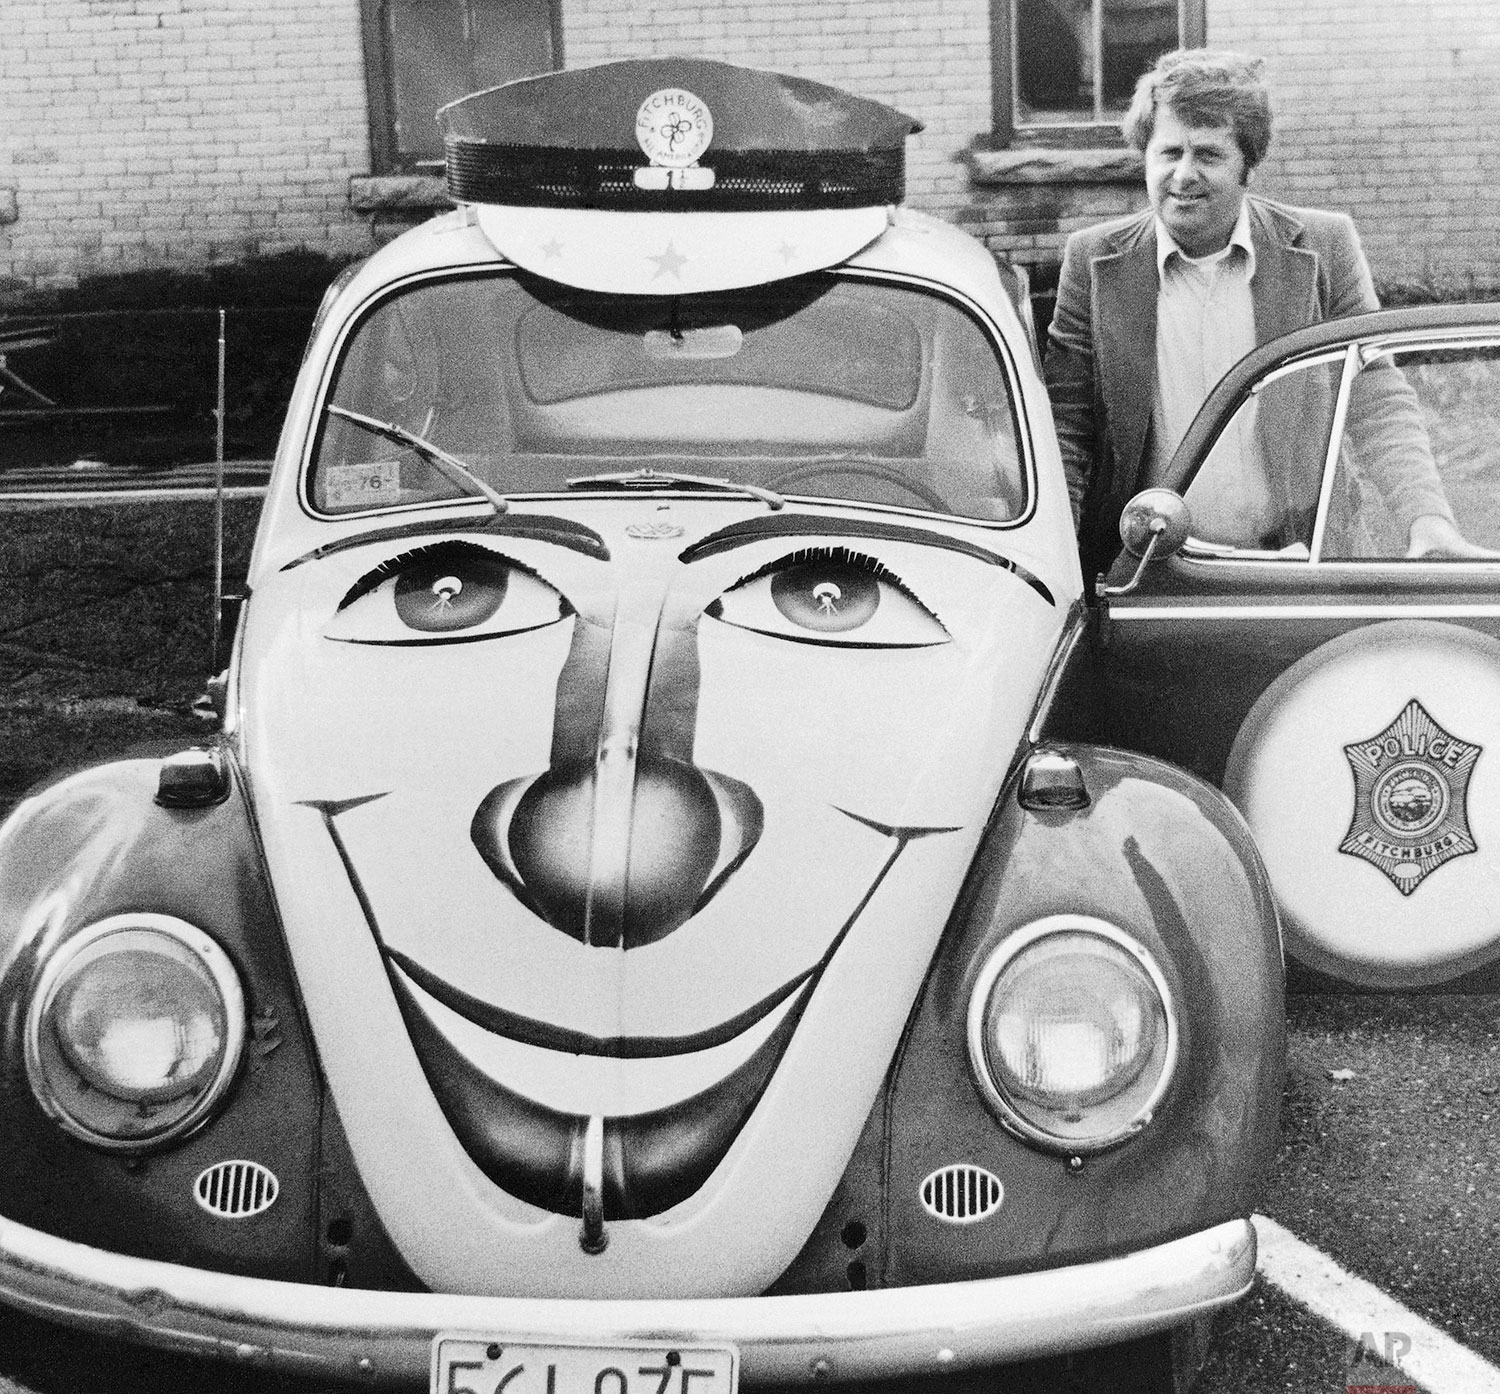 Fitchburg Police Youth officer, Det. Sgt. James R. Conry, stands beside his modified compact Volkswagen Beetle, Oct 26, 1976 in Fitchburg, Mass. (AP Photo)